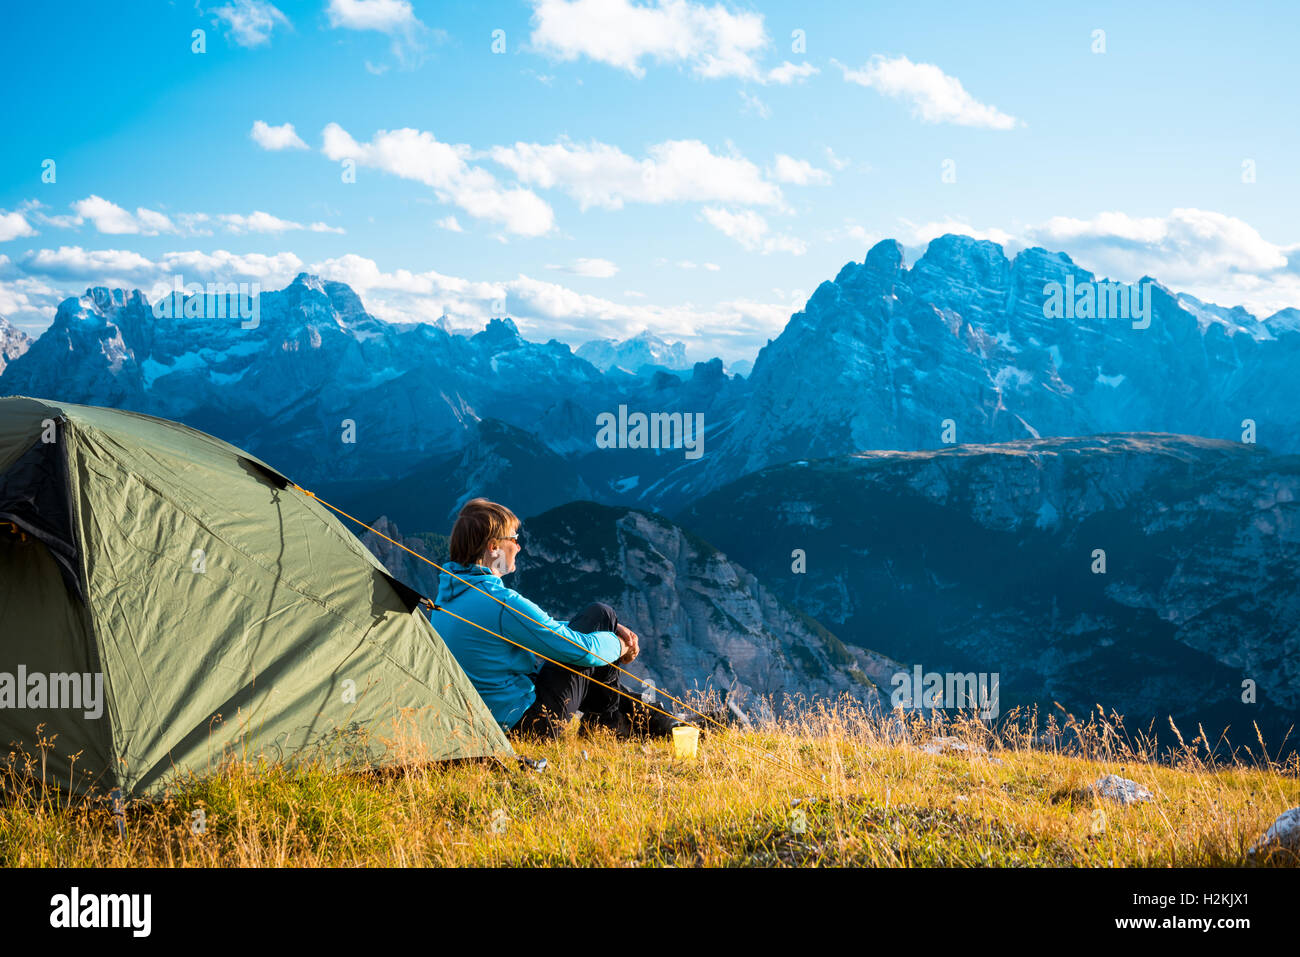 Camping in high mountains  Drei Zinnen Dolomites  Italy - Stock Image